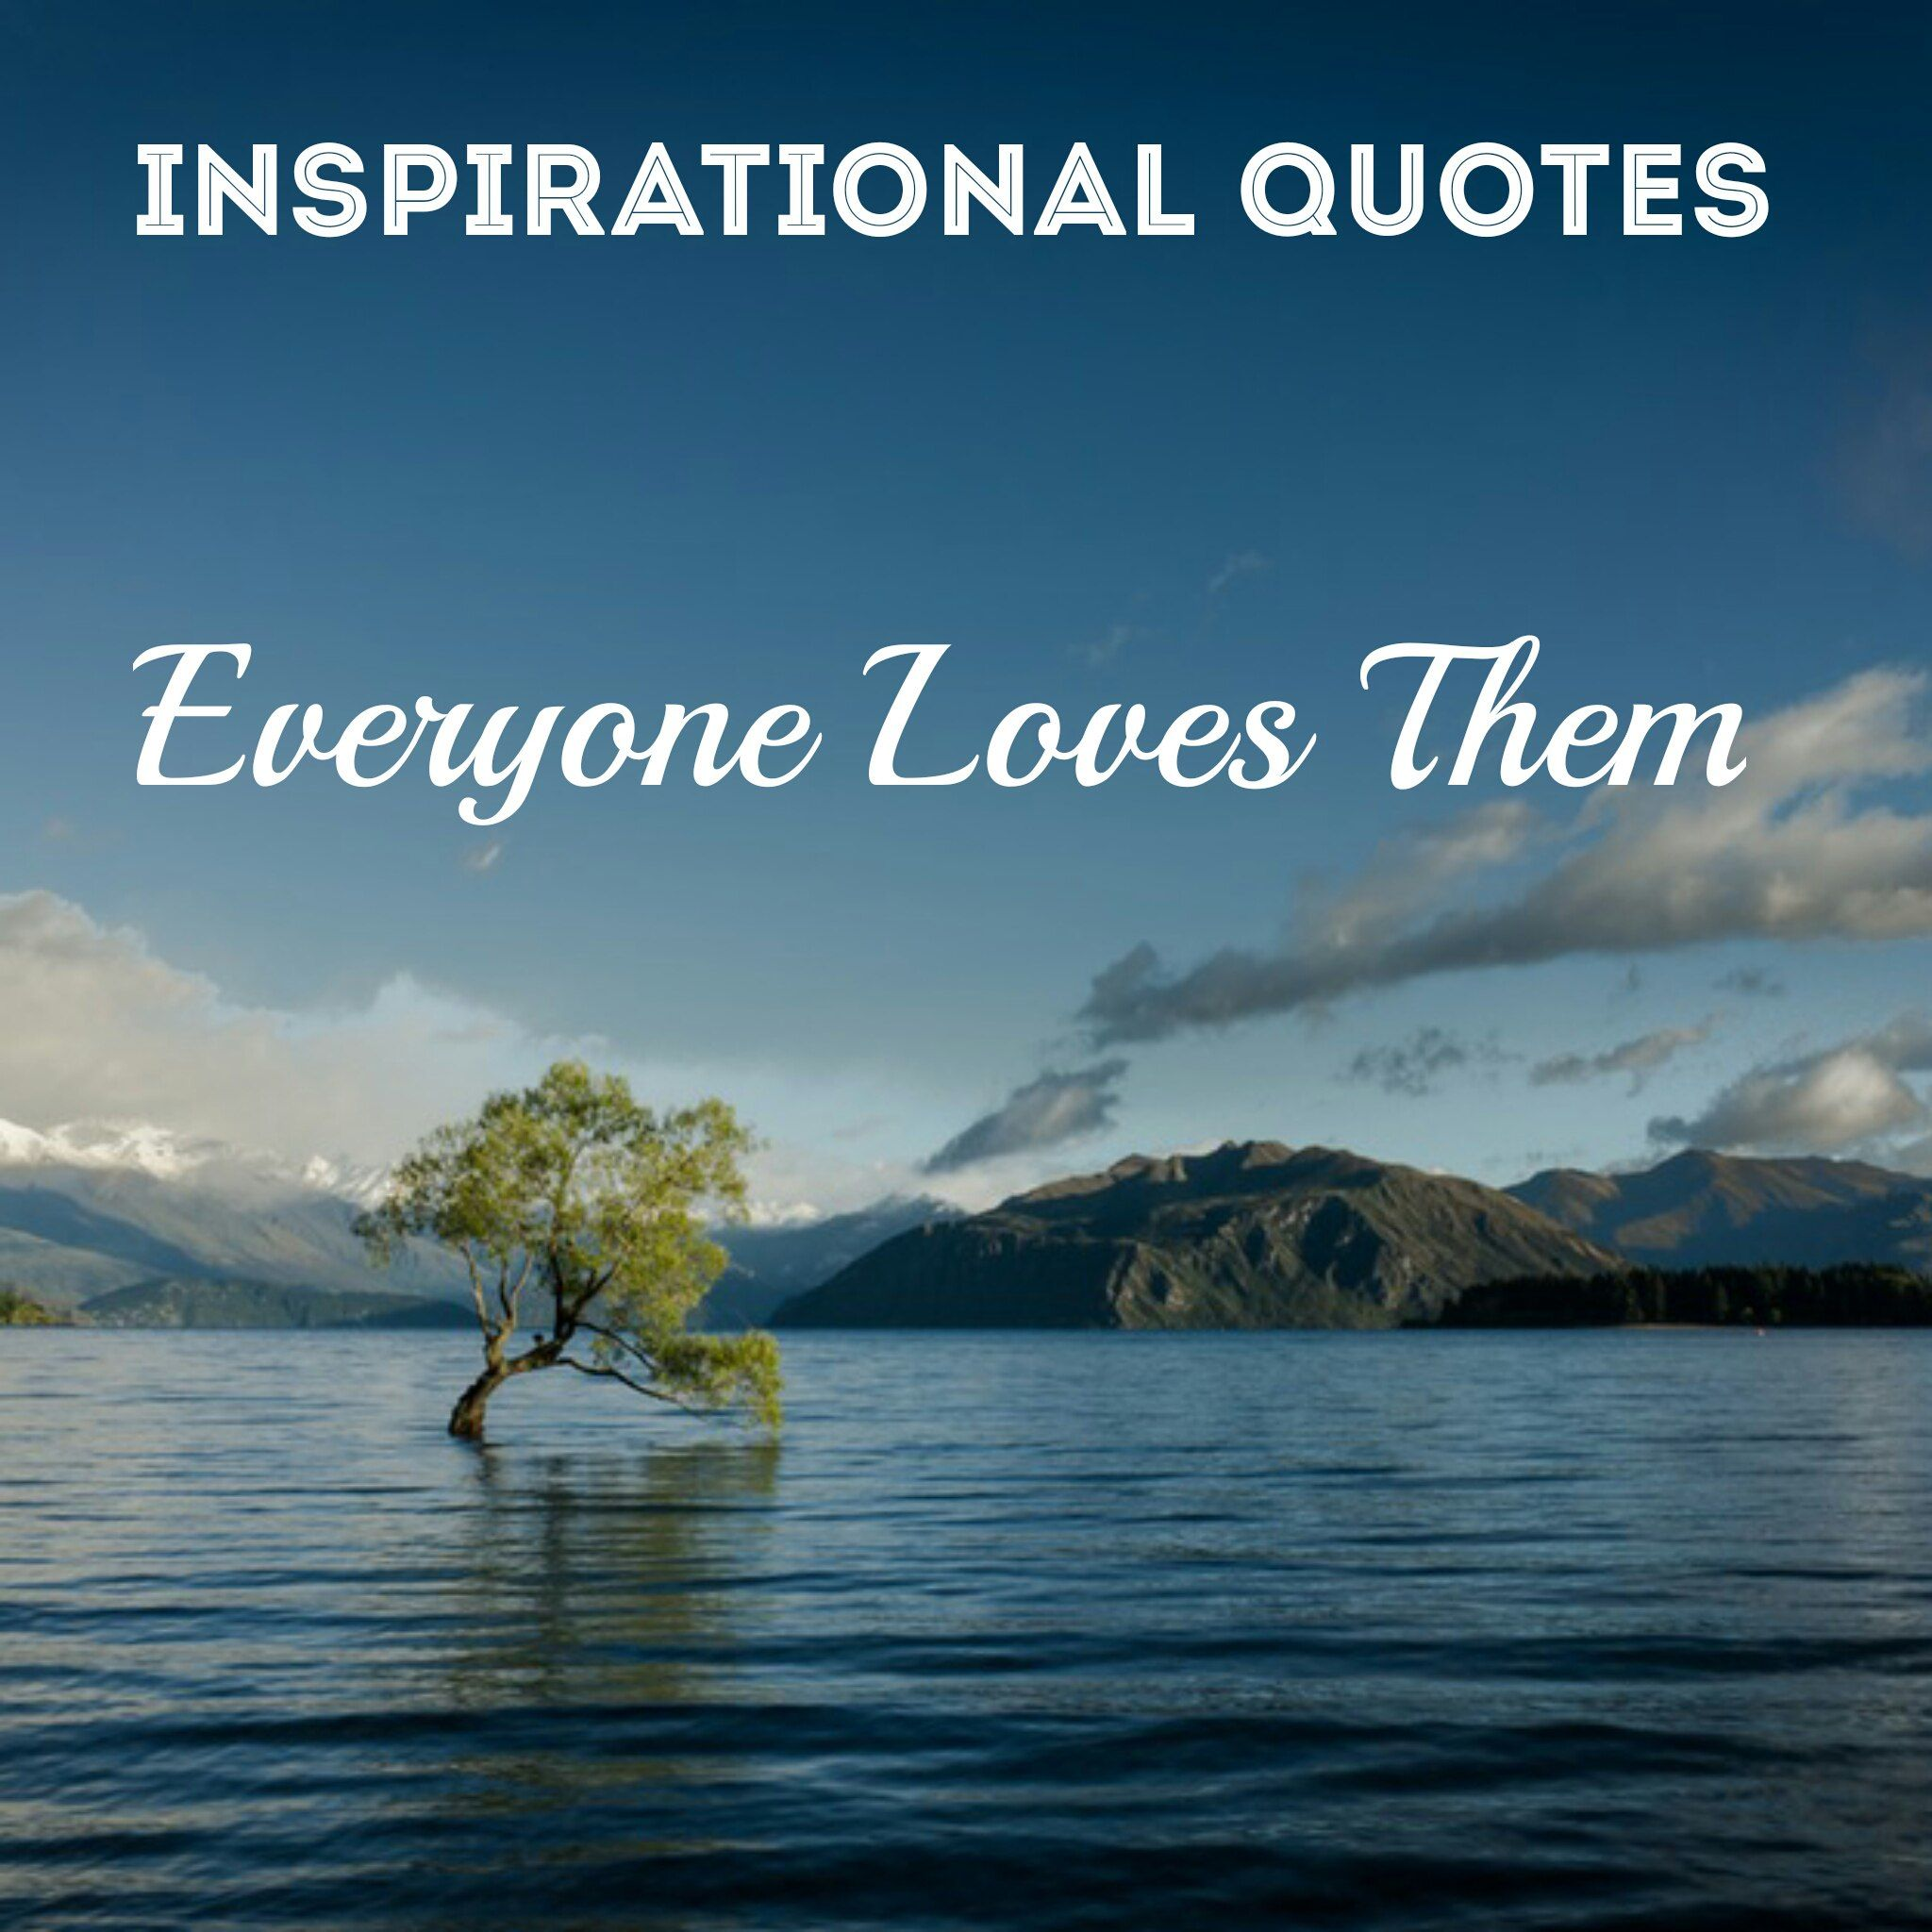 154 Best Inspirational Quotes Sayings Of All Time